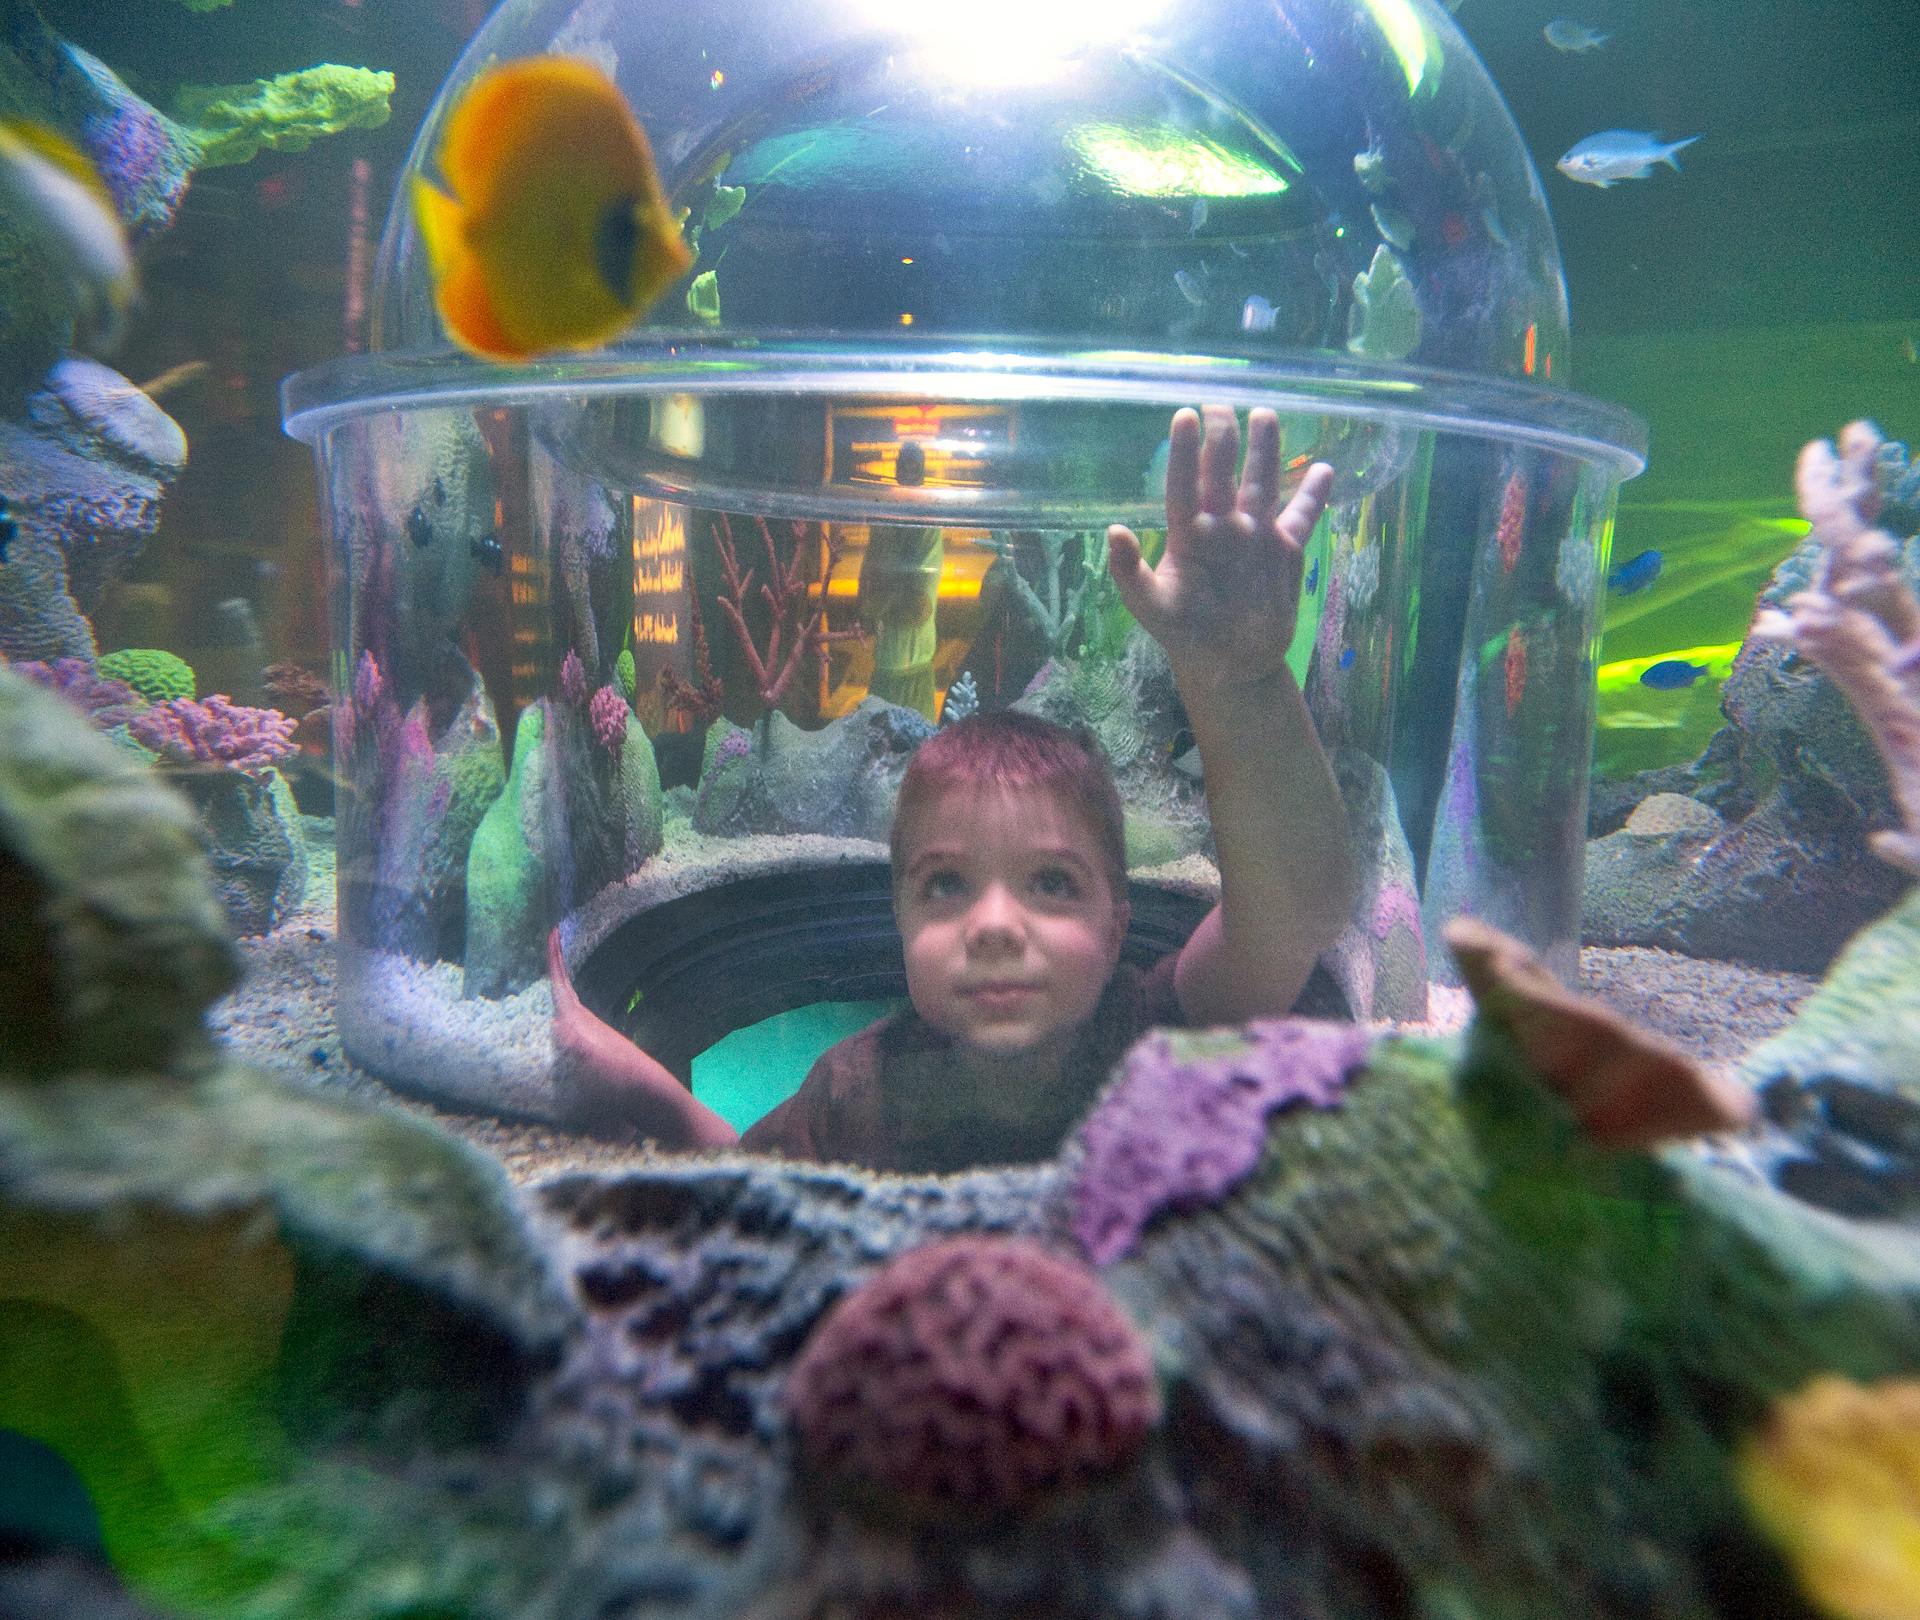 SEA LIFE Michigan Aquarium to Open Jan. 29th in Auburn Hills